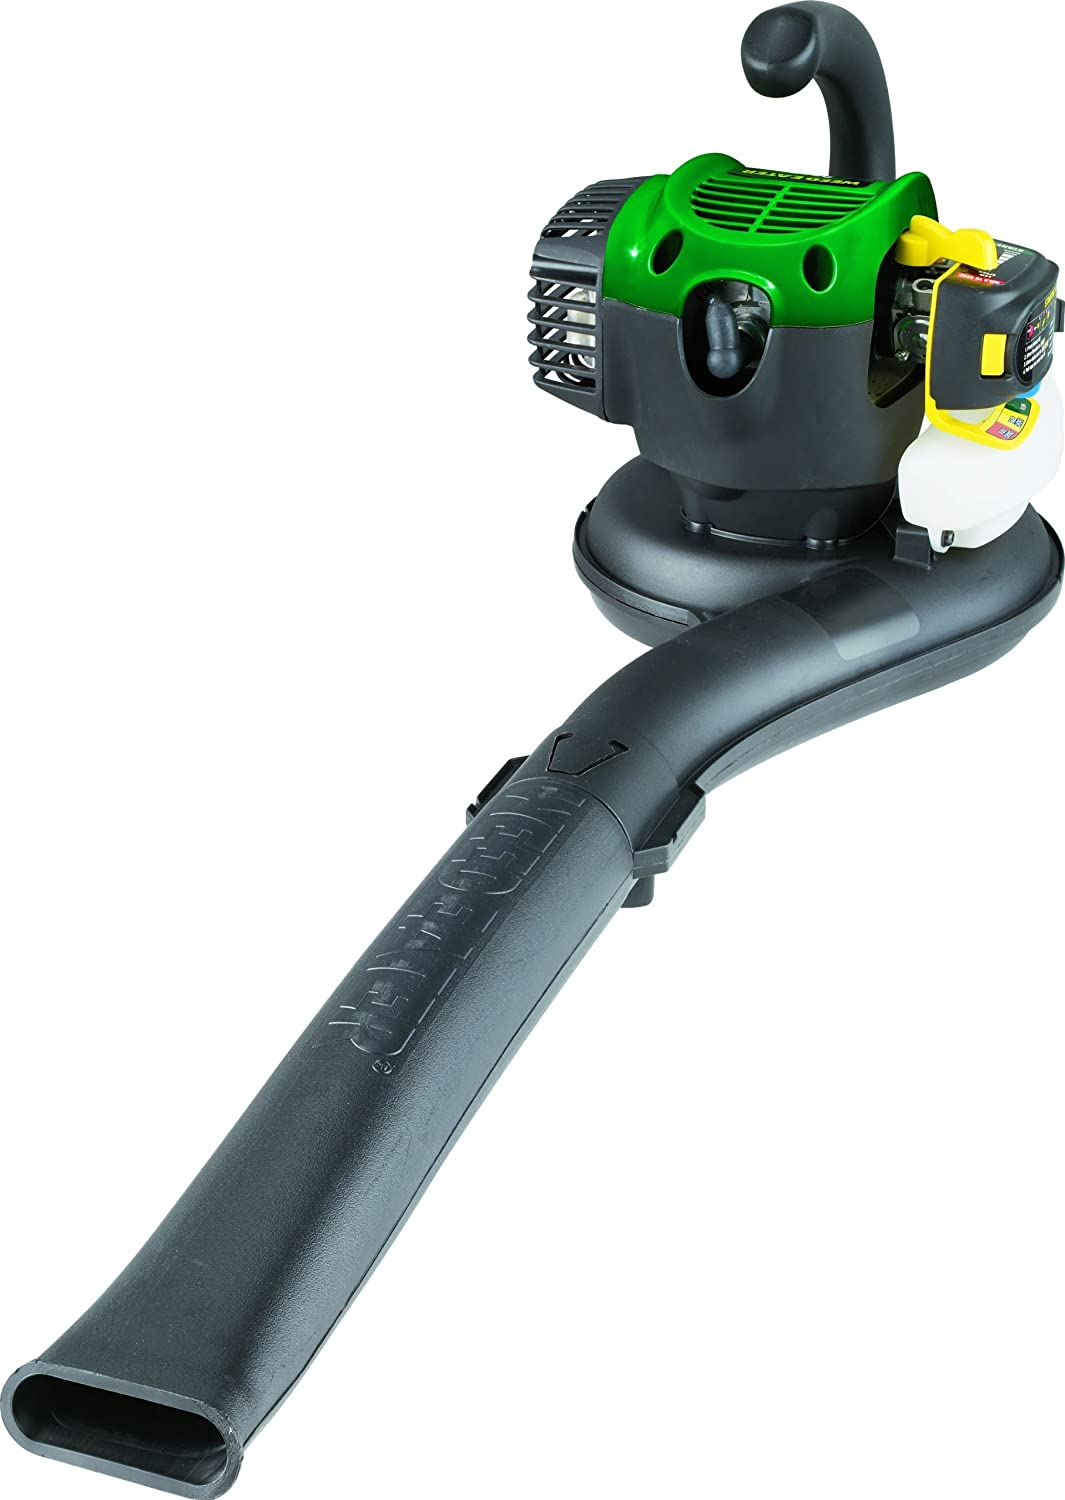 Amazon.com : Weed Eater FB25 25cc 2 Stroke Gas Powered 170 MPH Blower :  Lawn And Garden Blower Vacs : Garden & Outdoor